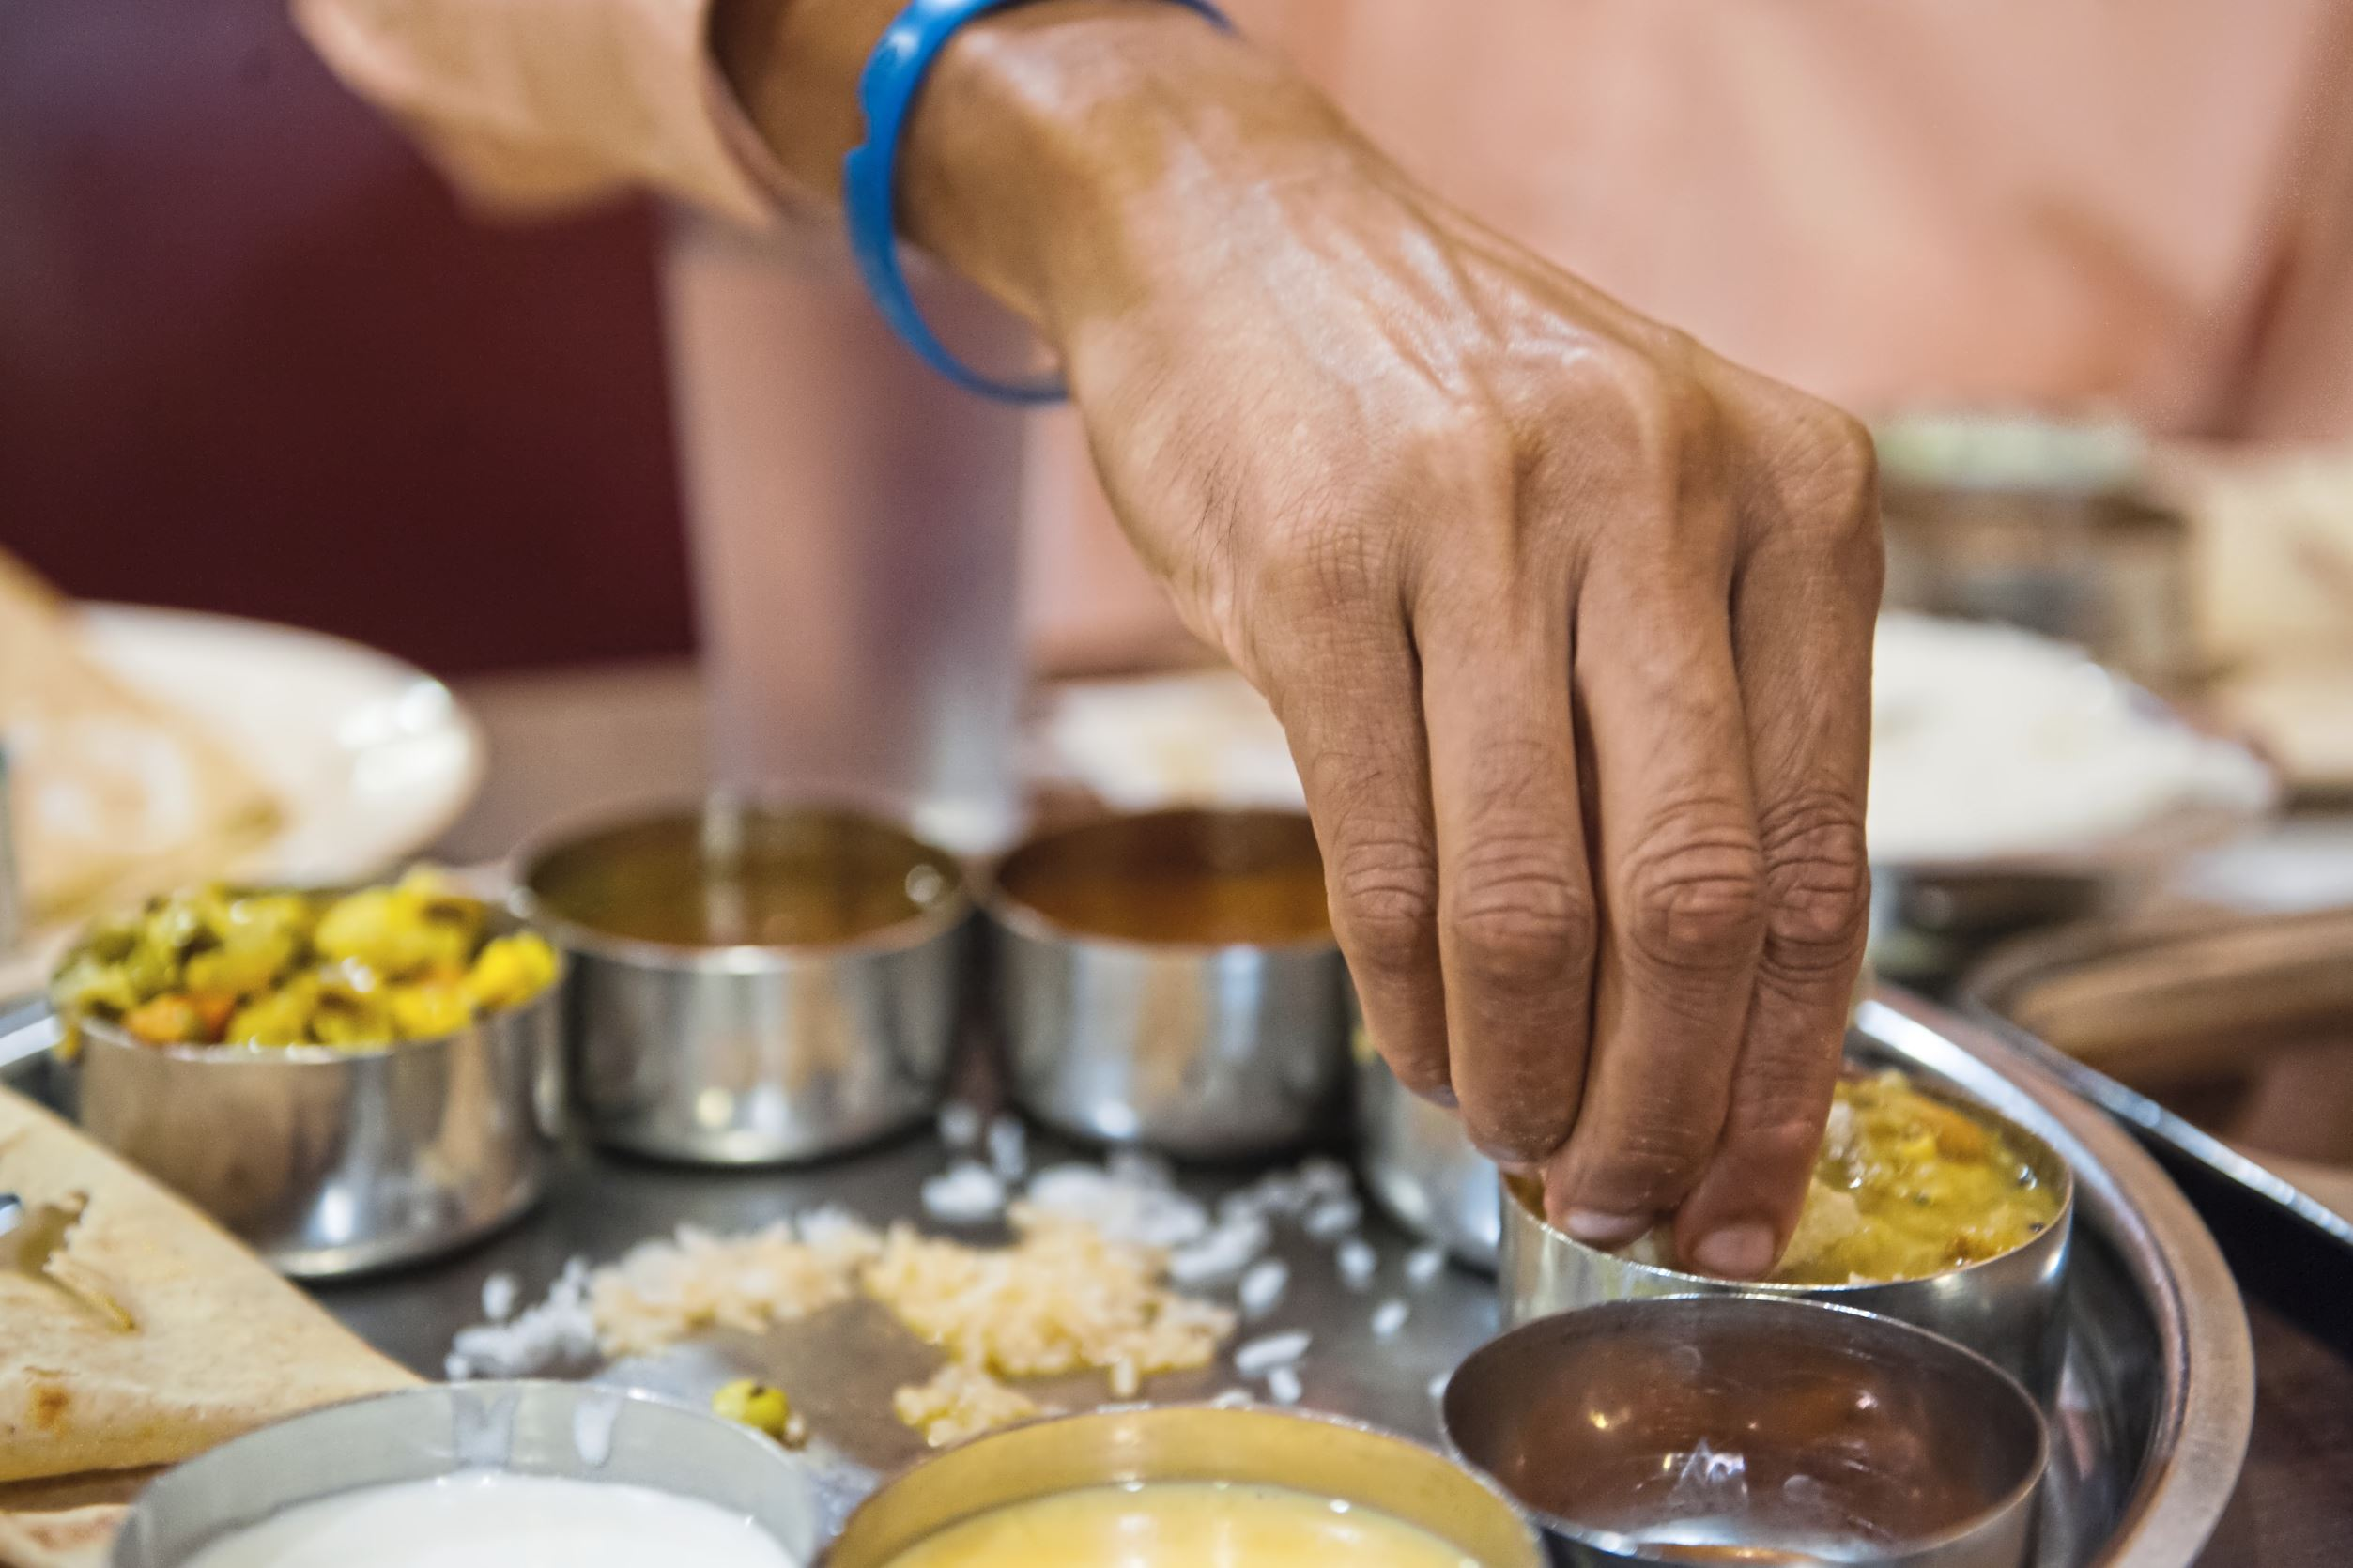 20170719smsEatWithHands02-1 Ganesh Viswanathan of Upper St. Clair uses his fingers to eat a South Indian thali at Udipi Cafe in Monroeville.